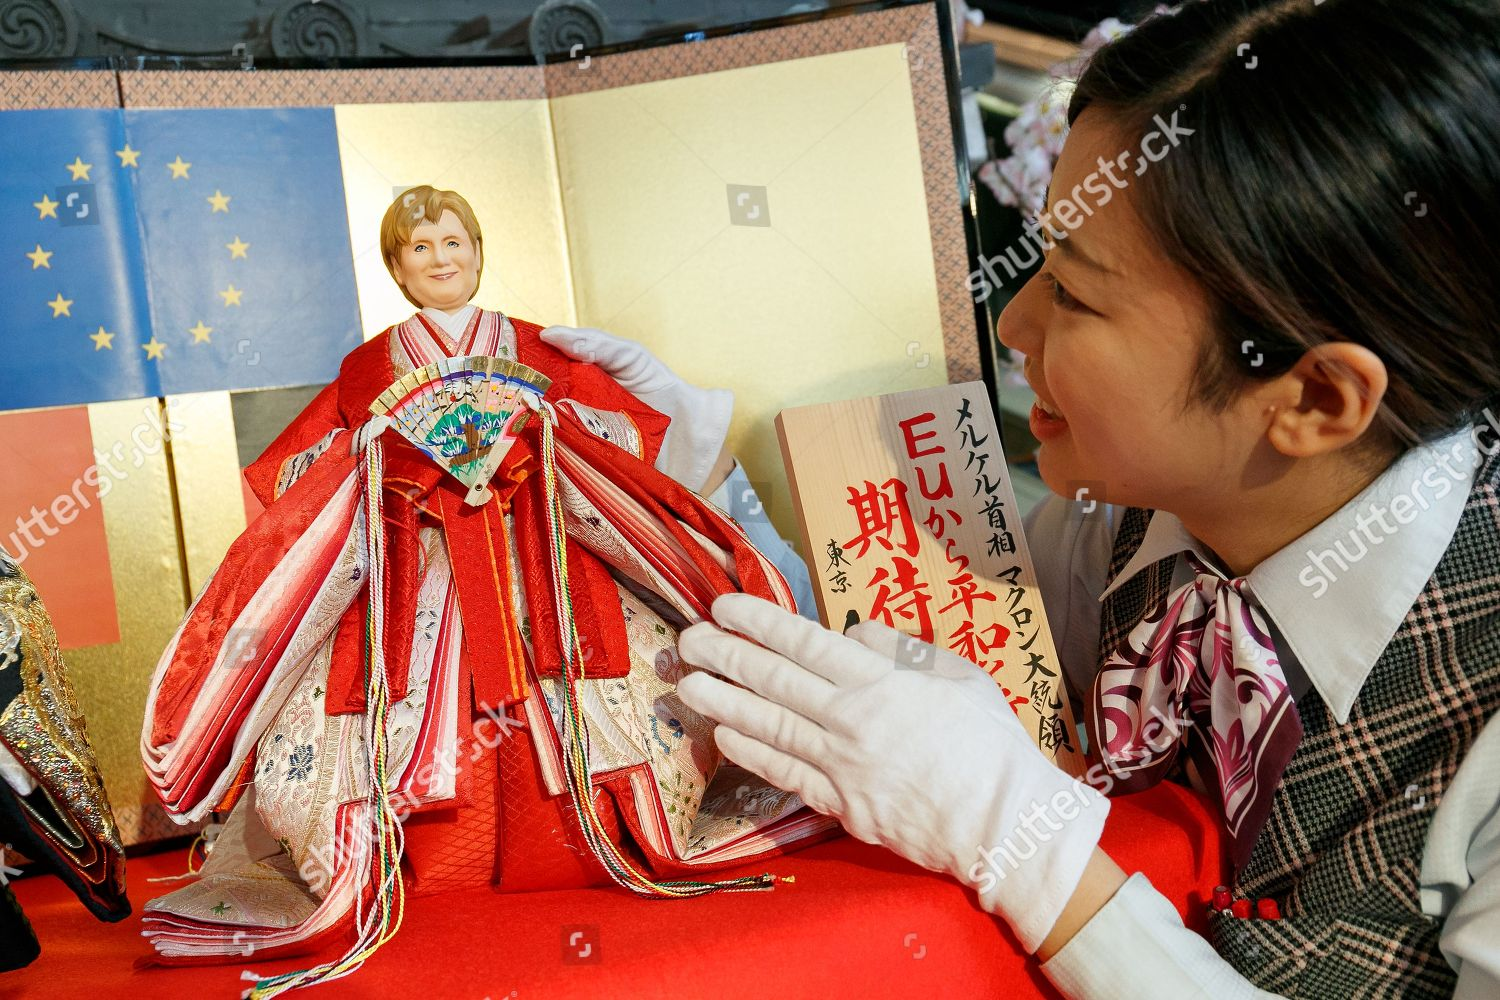 staff member displays Japanese hina doll modeled Editorial